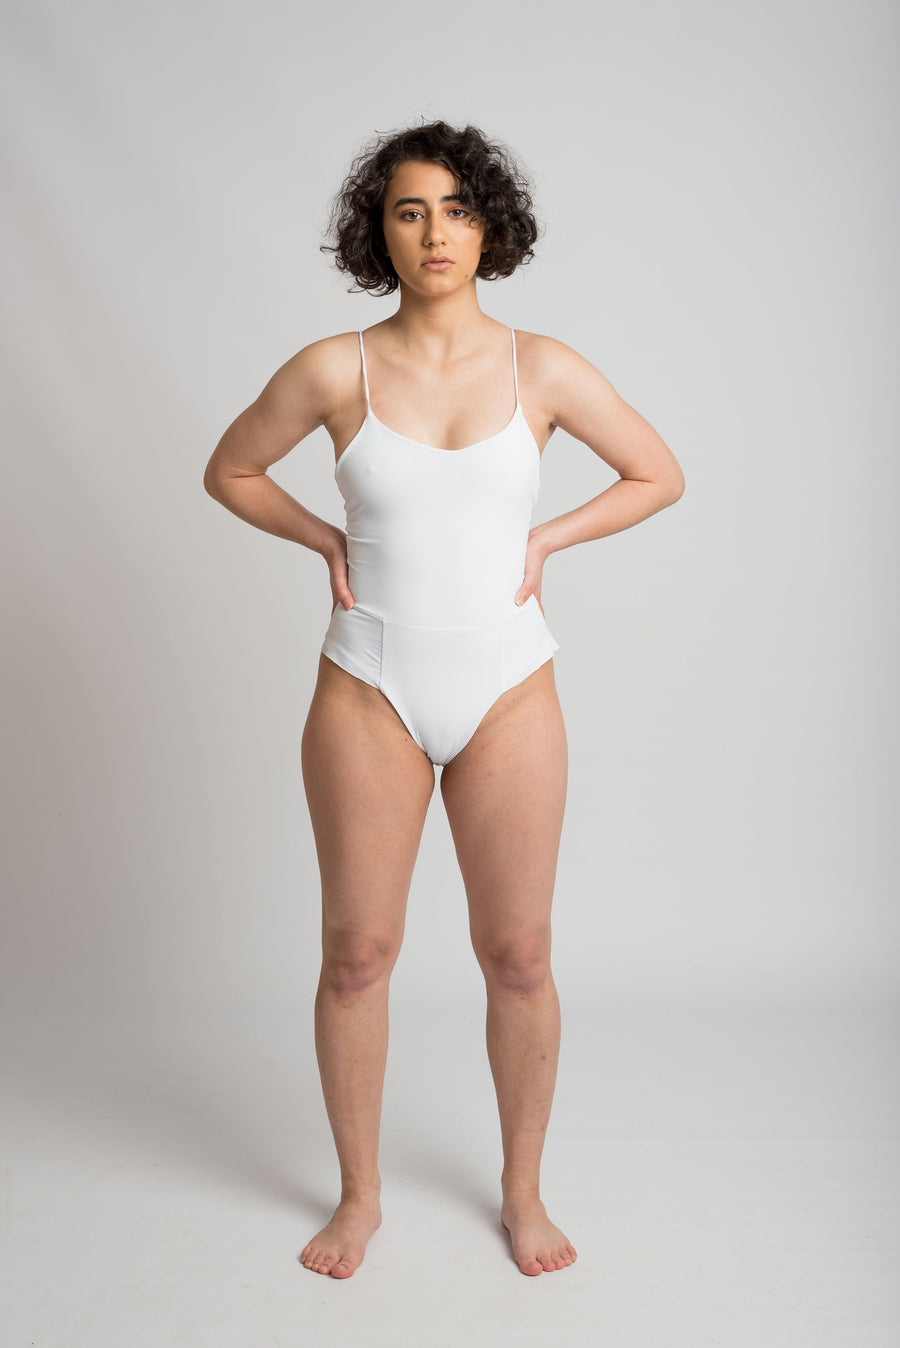 Ethical and sustainable swimwear for women xxs to plus size, recycled ECONYL cute frill onepiece ethically made in Australia.